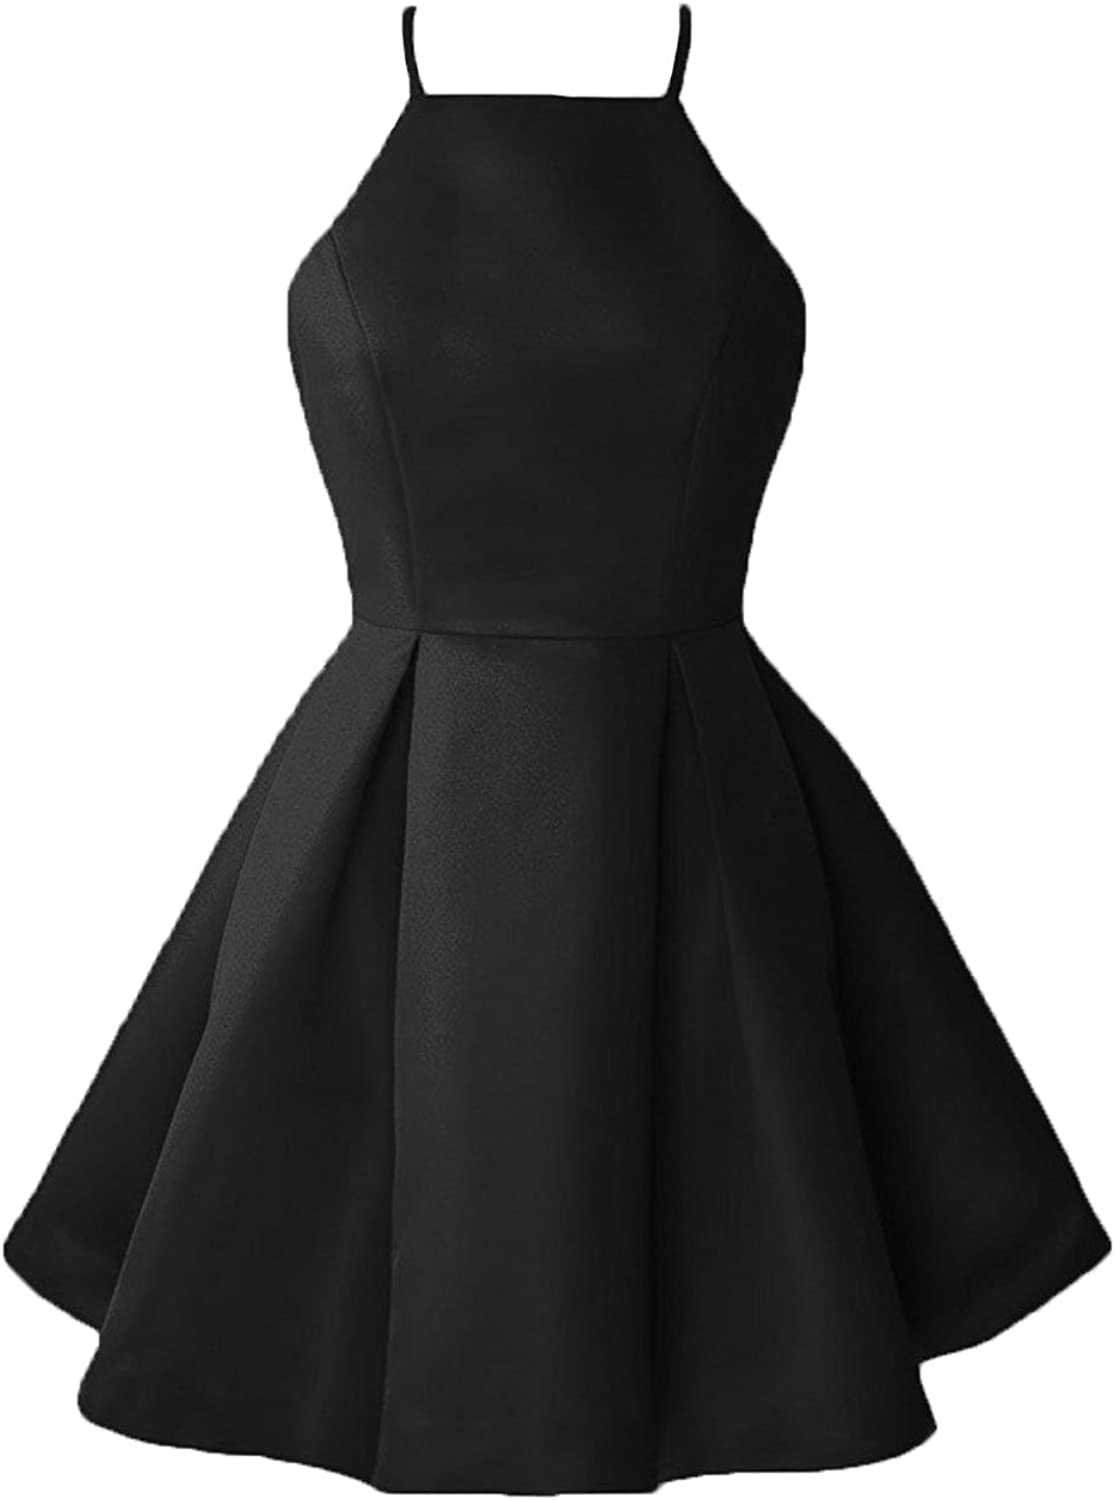 Dannifore Halter ALine Satin Homecoming Dress Short Cocktail Party Gown